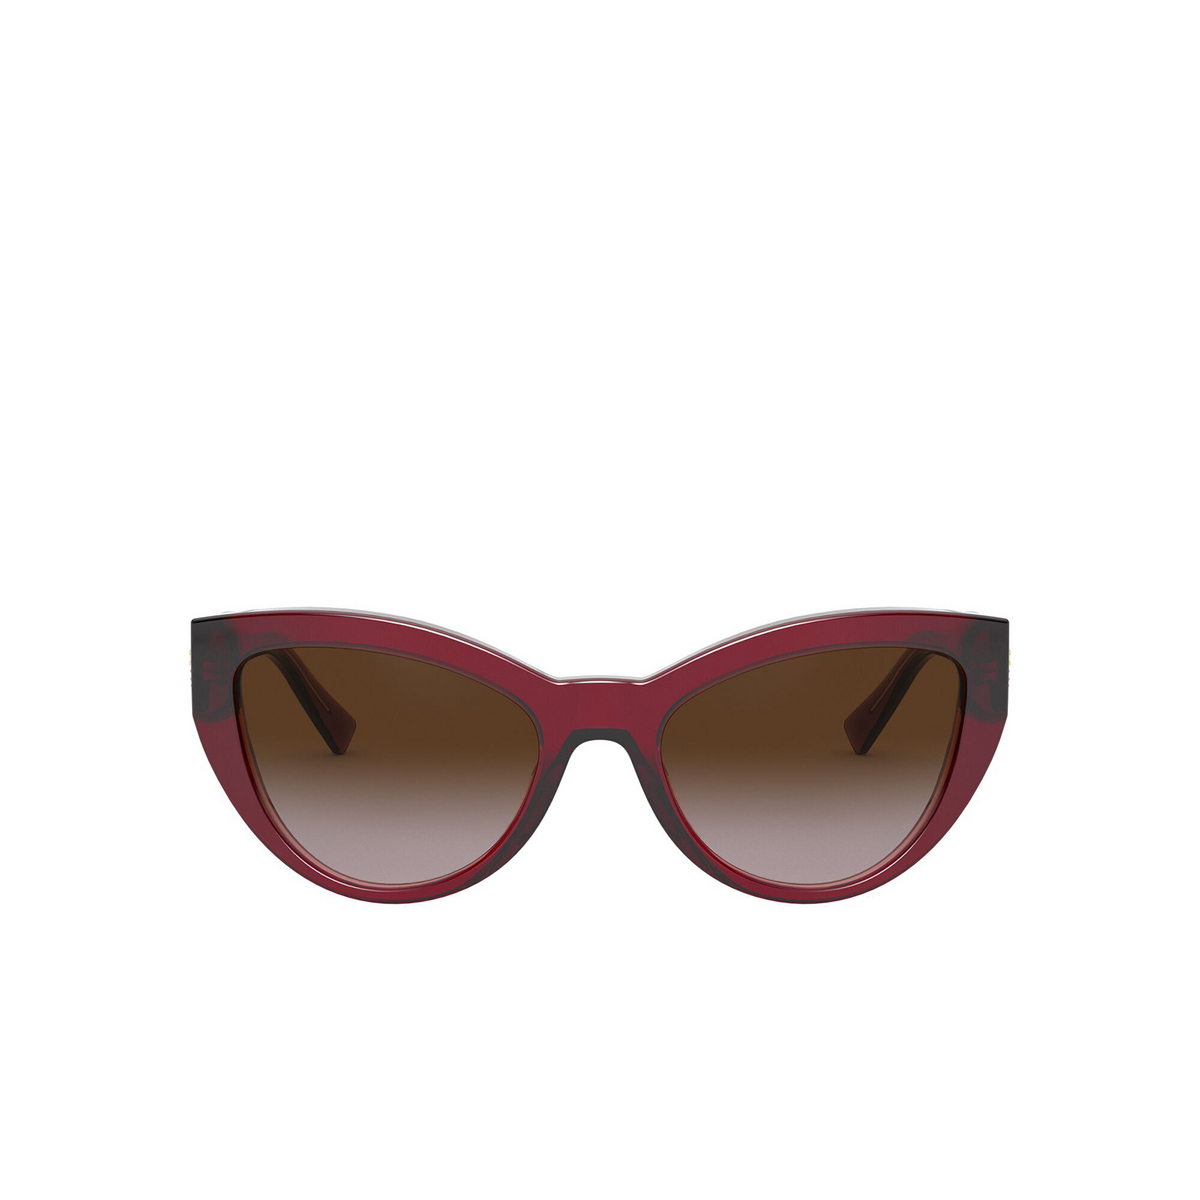 Versace® Cat-eye Sunglasses: VE4381B color Transparent Red 388/13 - front view.